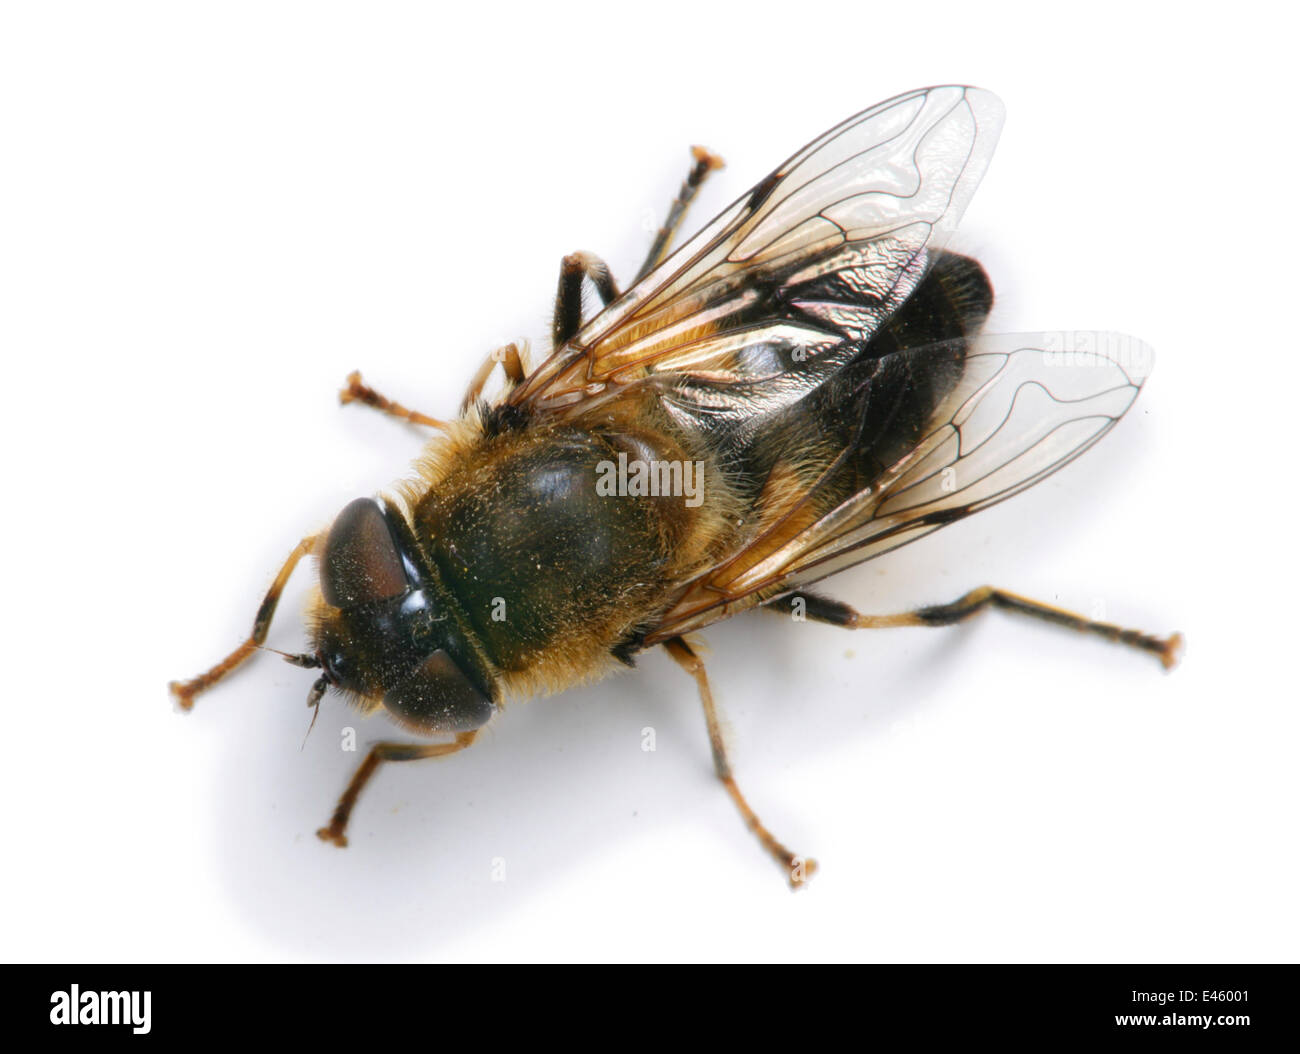 Drone / Hover Fly (Eristalis tenax) female against a white background. Surrey, UK, May. - Stock Image